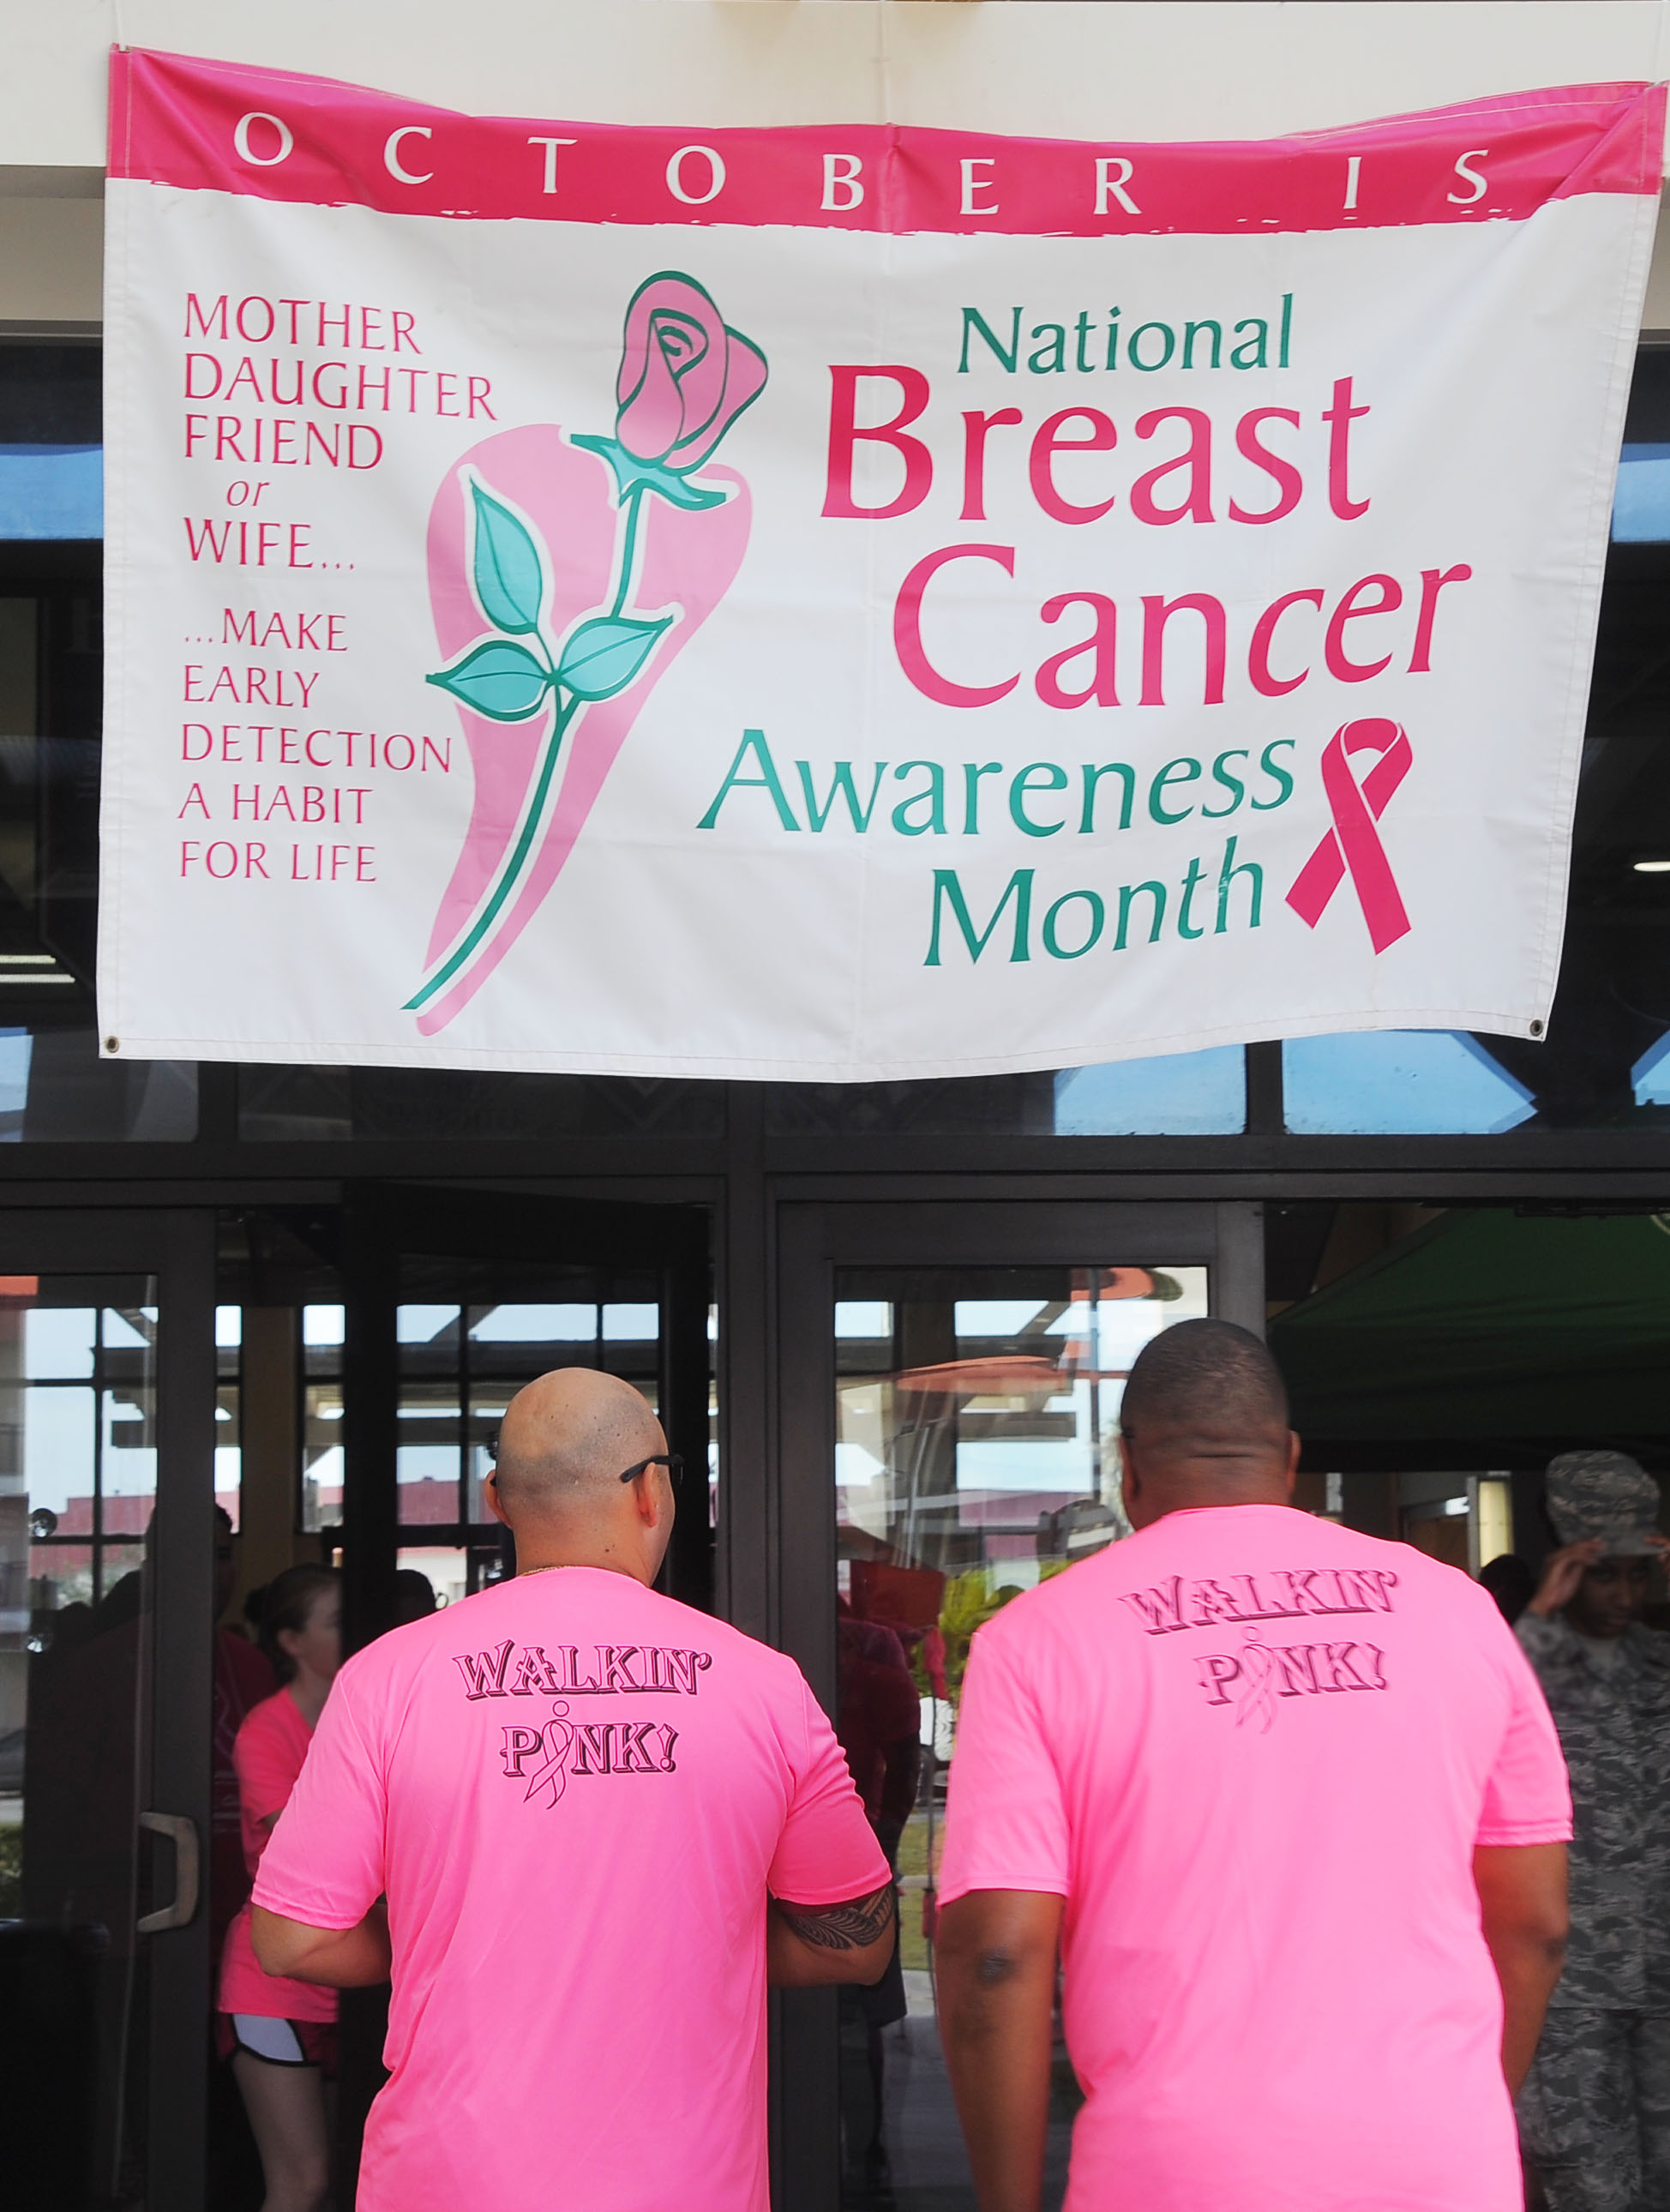 Walk for life for breast cancer